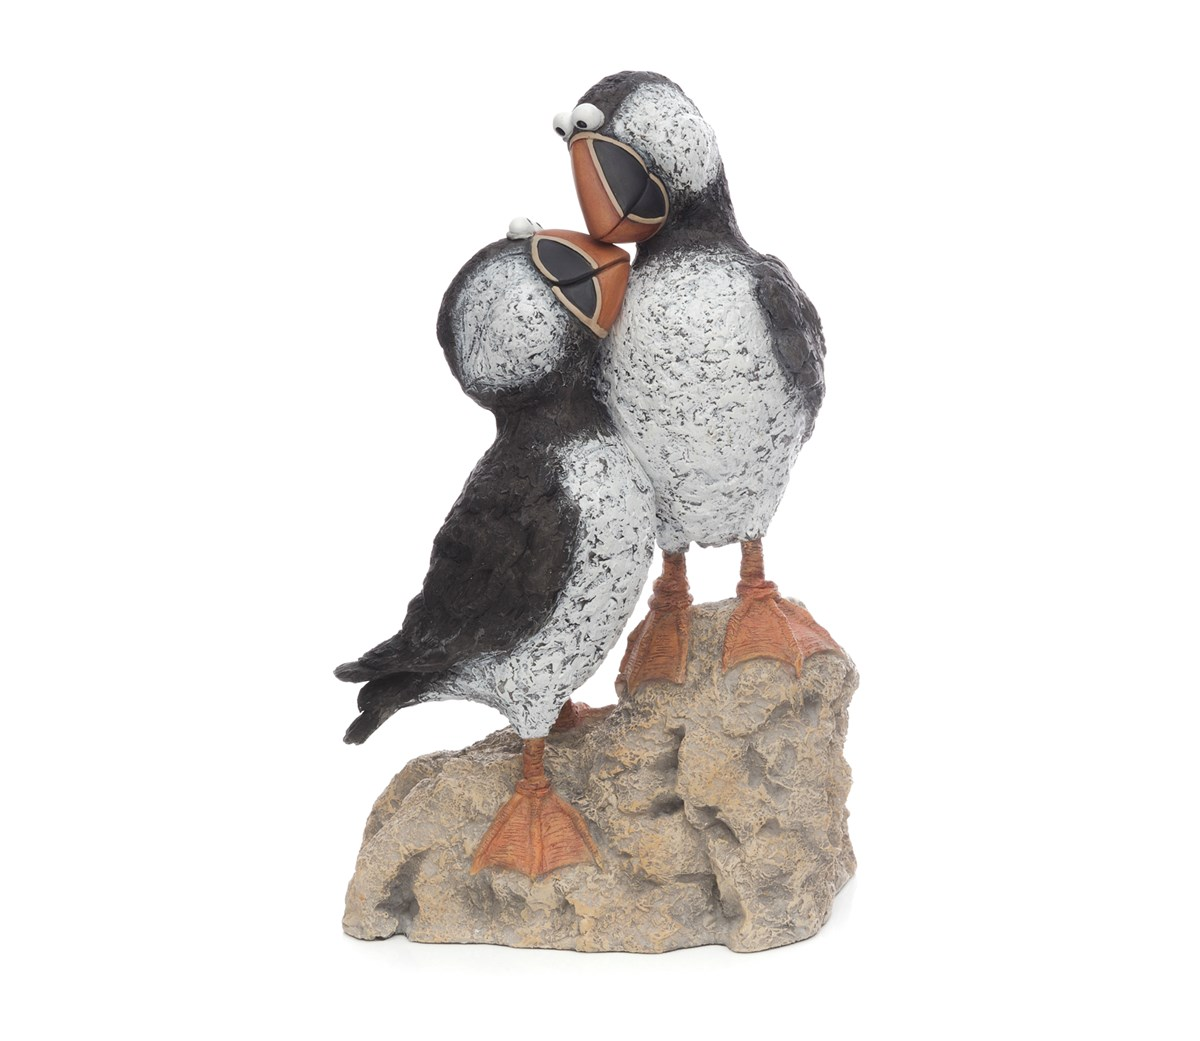 Rocky Romance by Rebecca Lardner - Cold Cast Porcelain sized 12x7 inches. Available from Whitewall Galleries